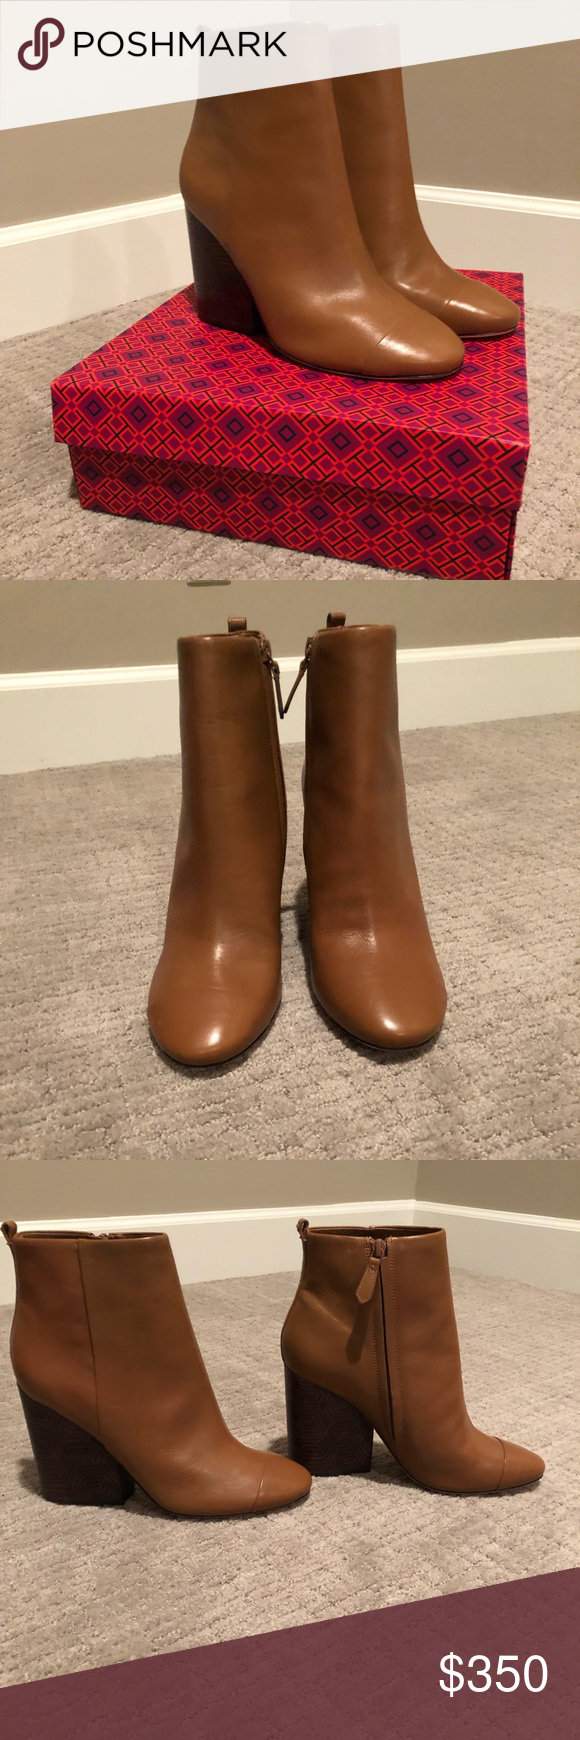 b27baff84e7 Tory Burch Grove Bootie New in box, size 9, Royal Tan, 100MM, Tuniz Calf.  Gorgeous boots! Tory Burch Shoes Ankle Boots & Booties